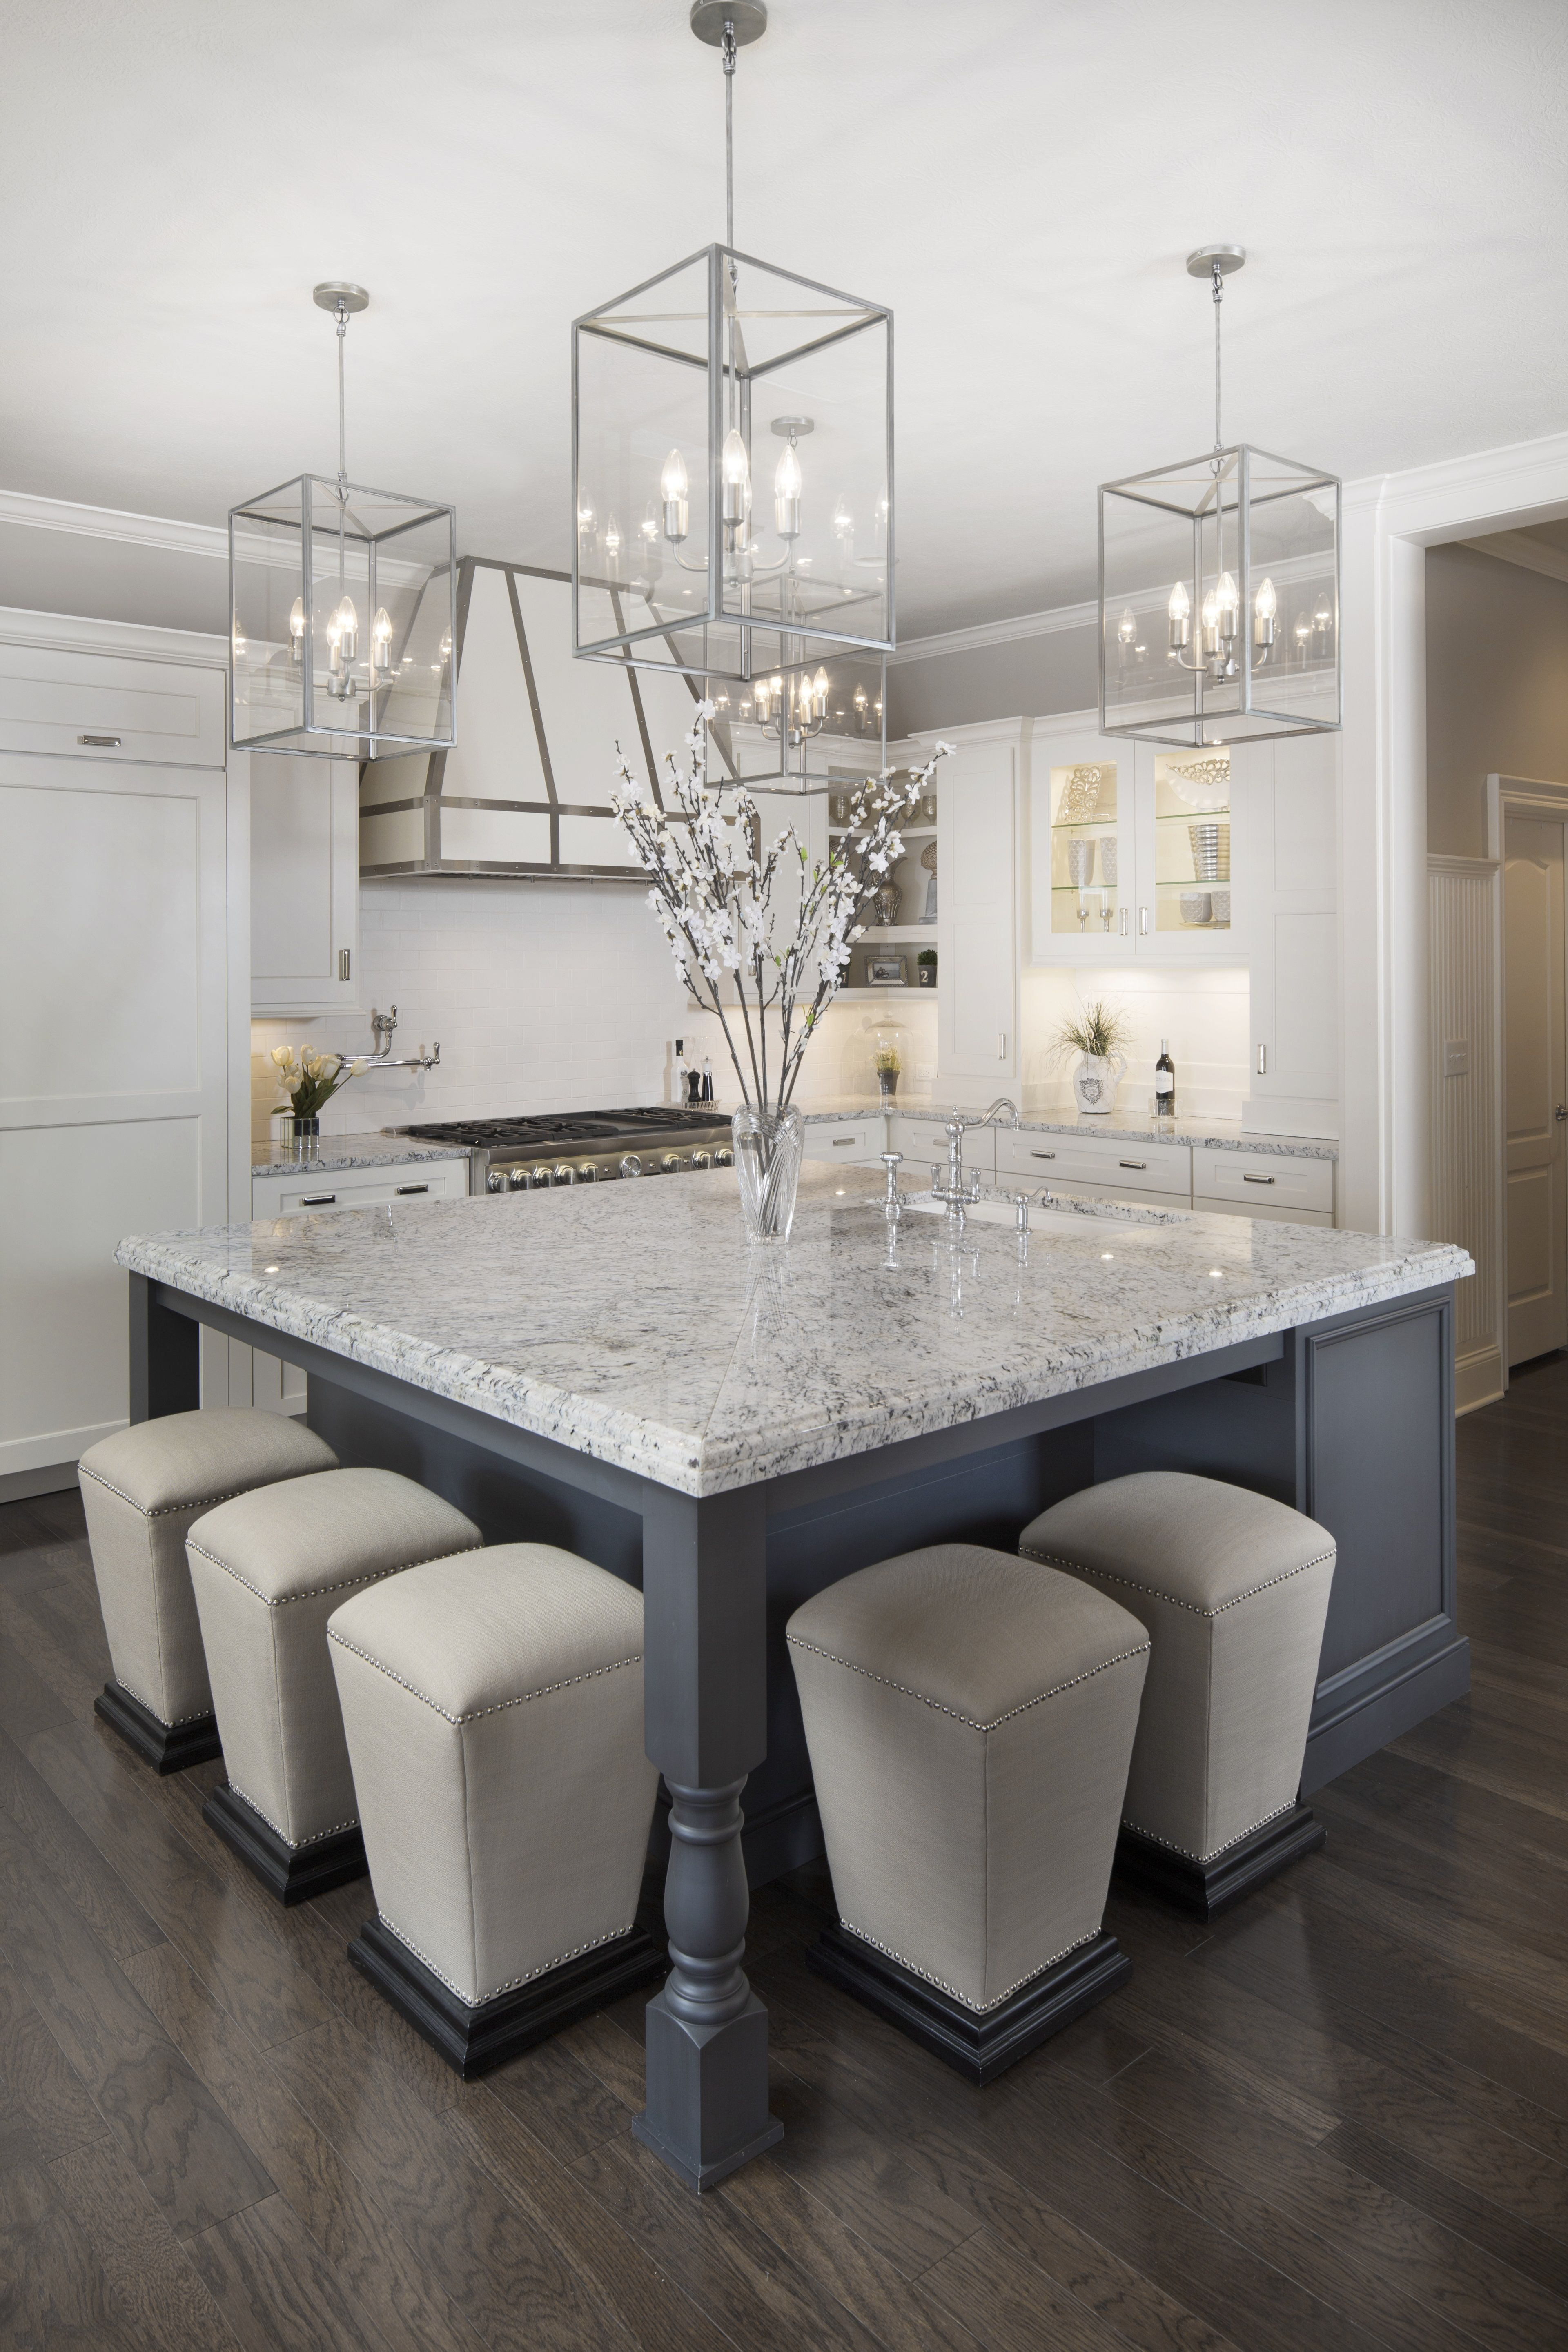 Exquisite kitchen Kitchens by Design, Indianapolis. www